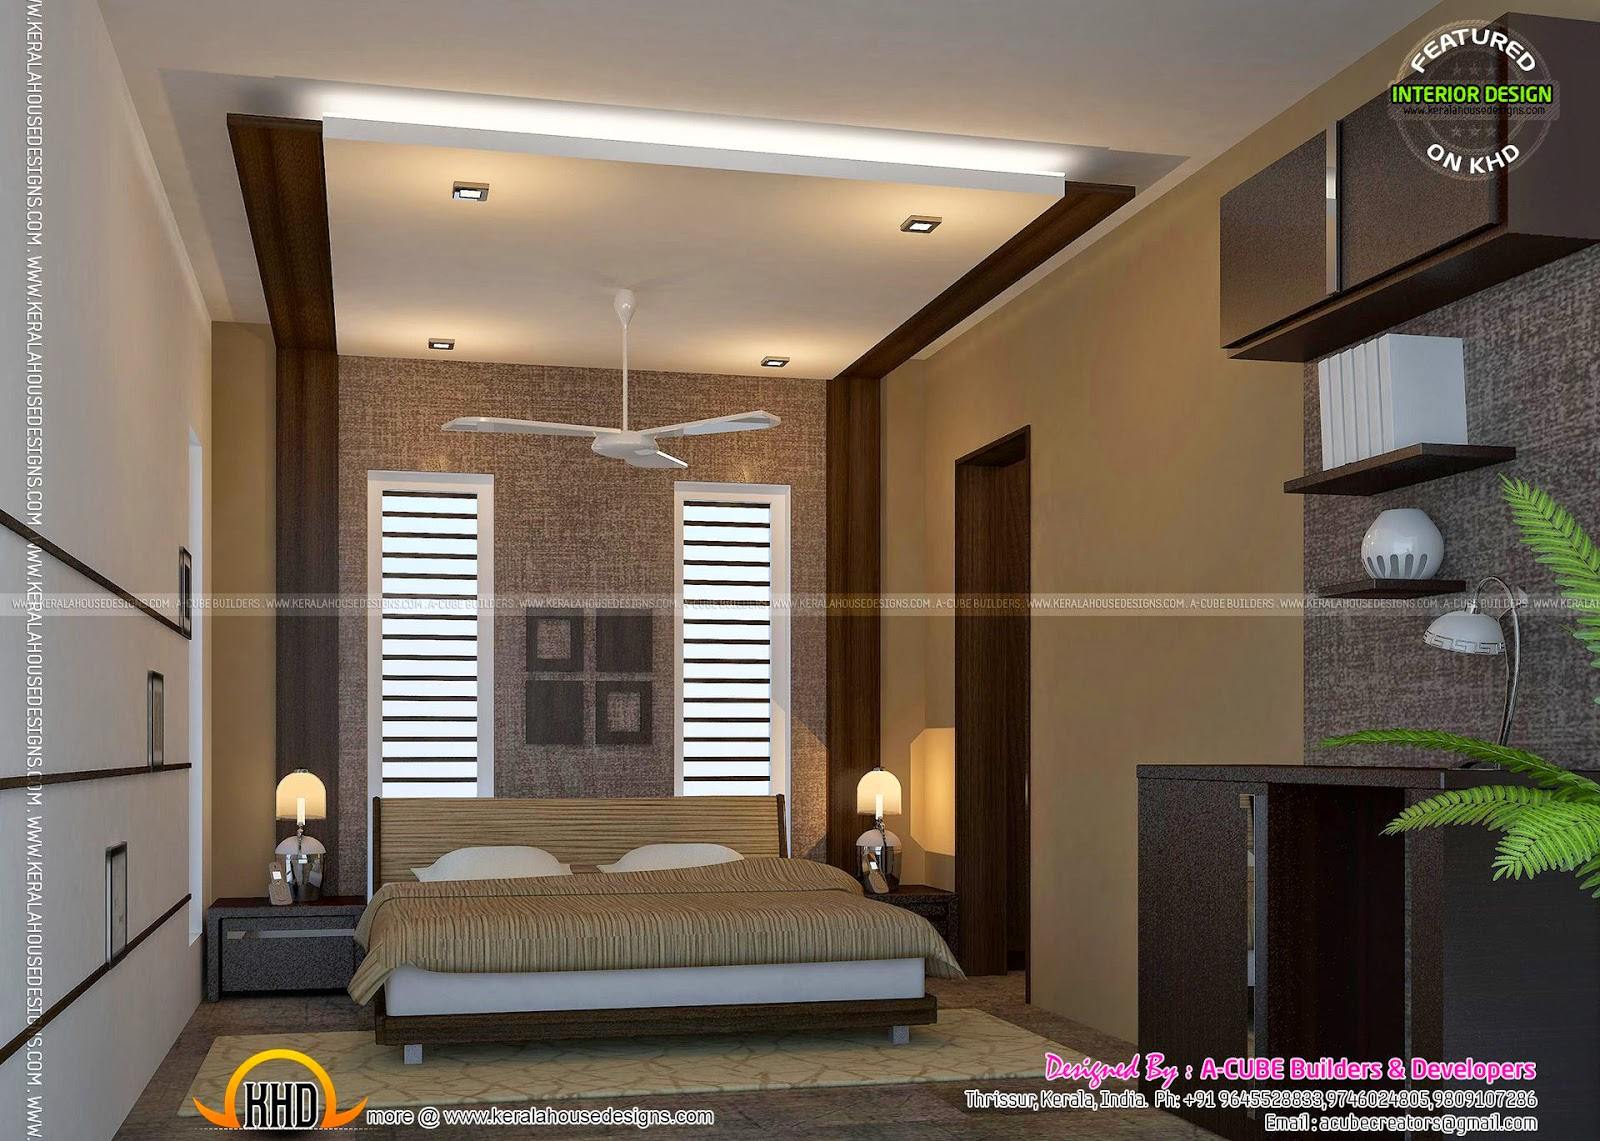 interior design in kerala homes kerala interior design ideas kerala home design and 24453